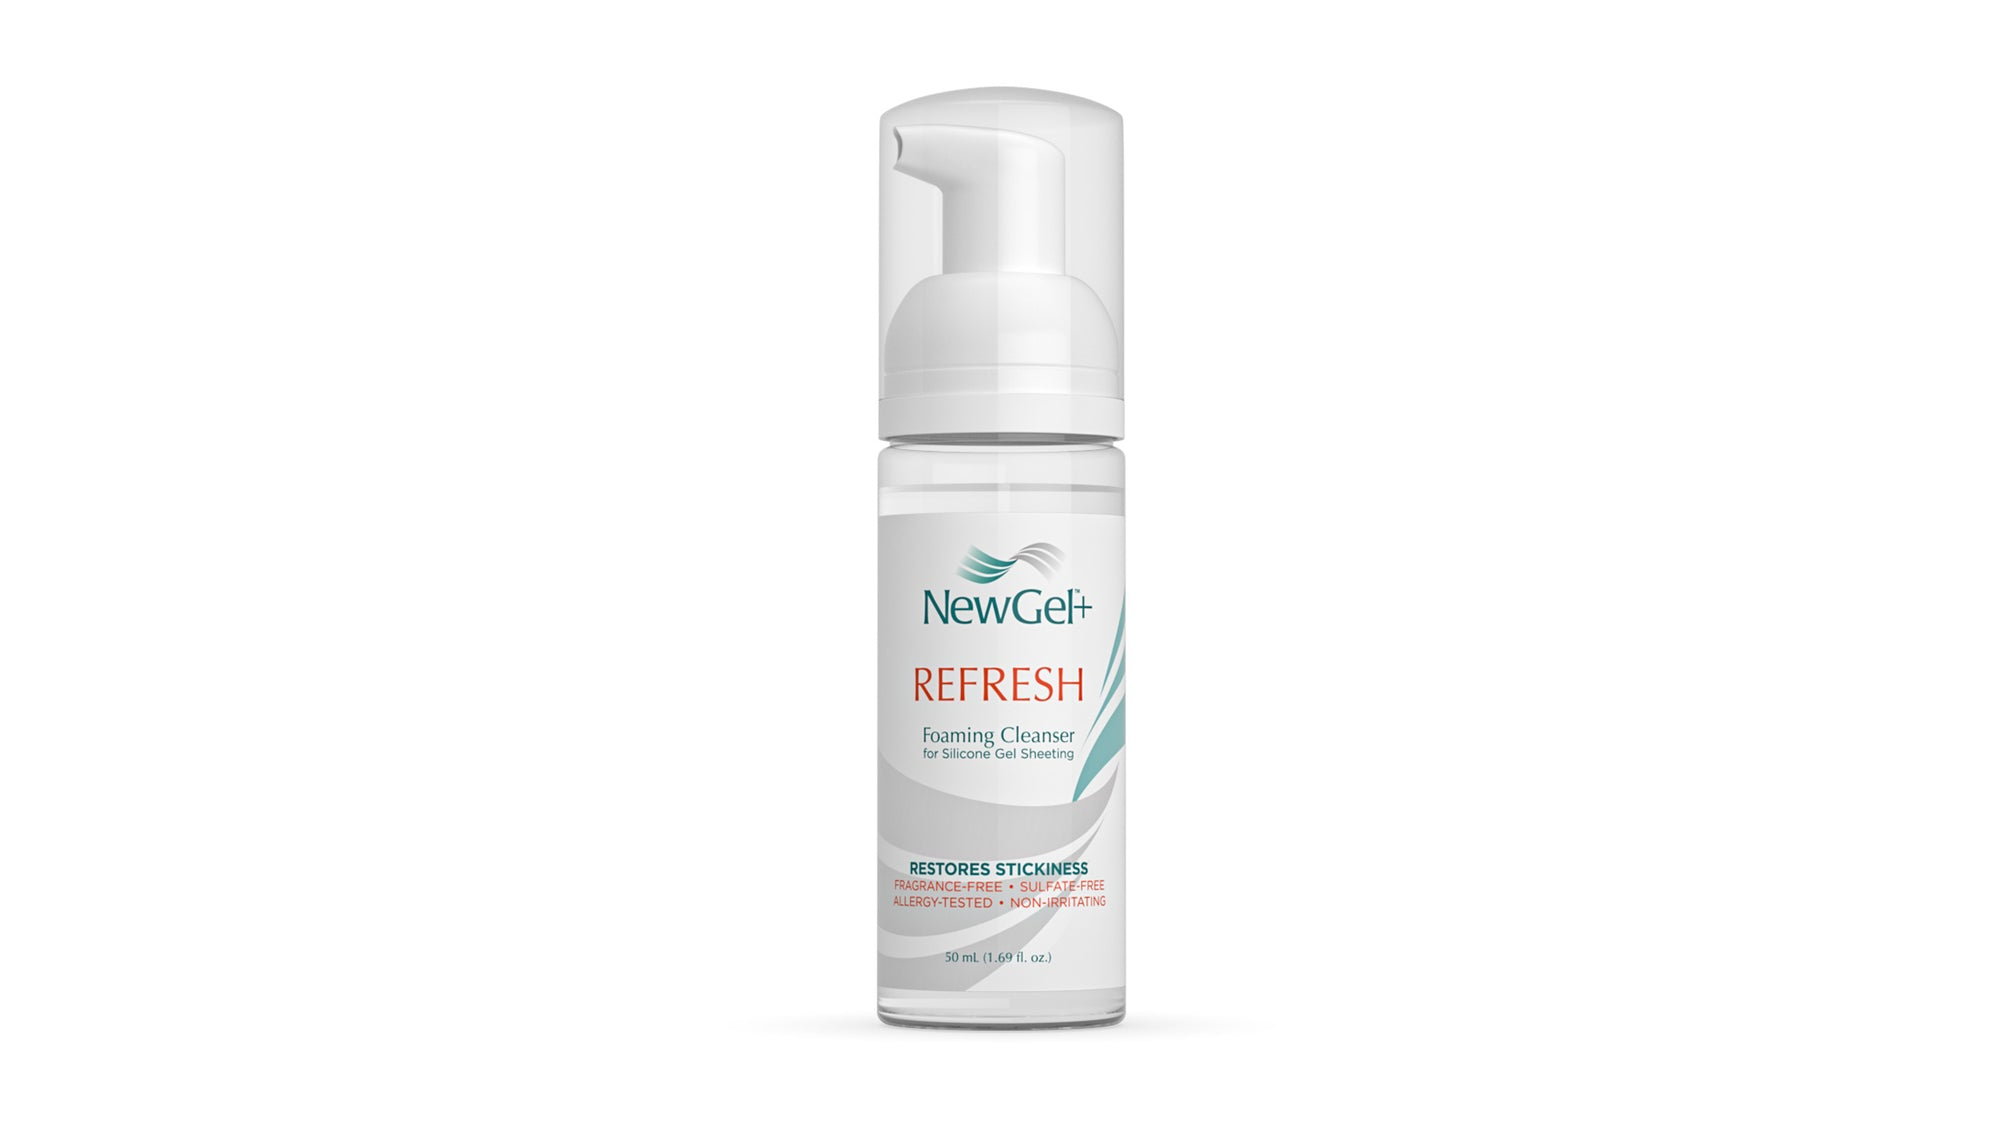 Refresh Foaming Cleanser for Adhesive Scar Products